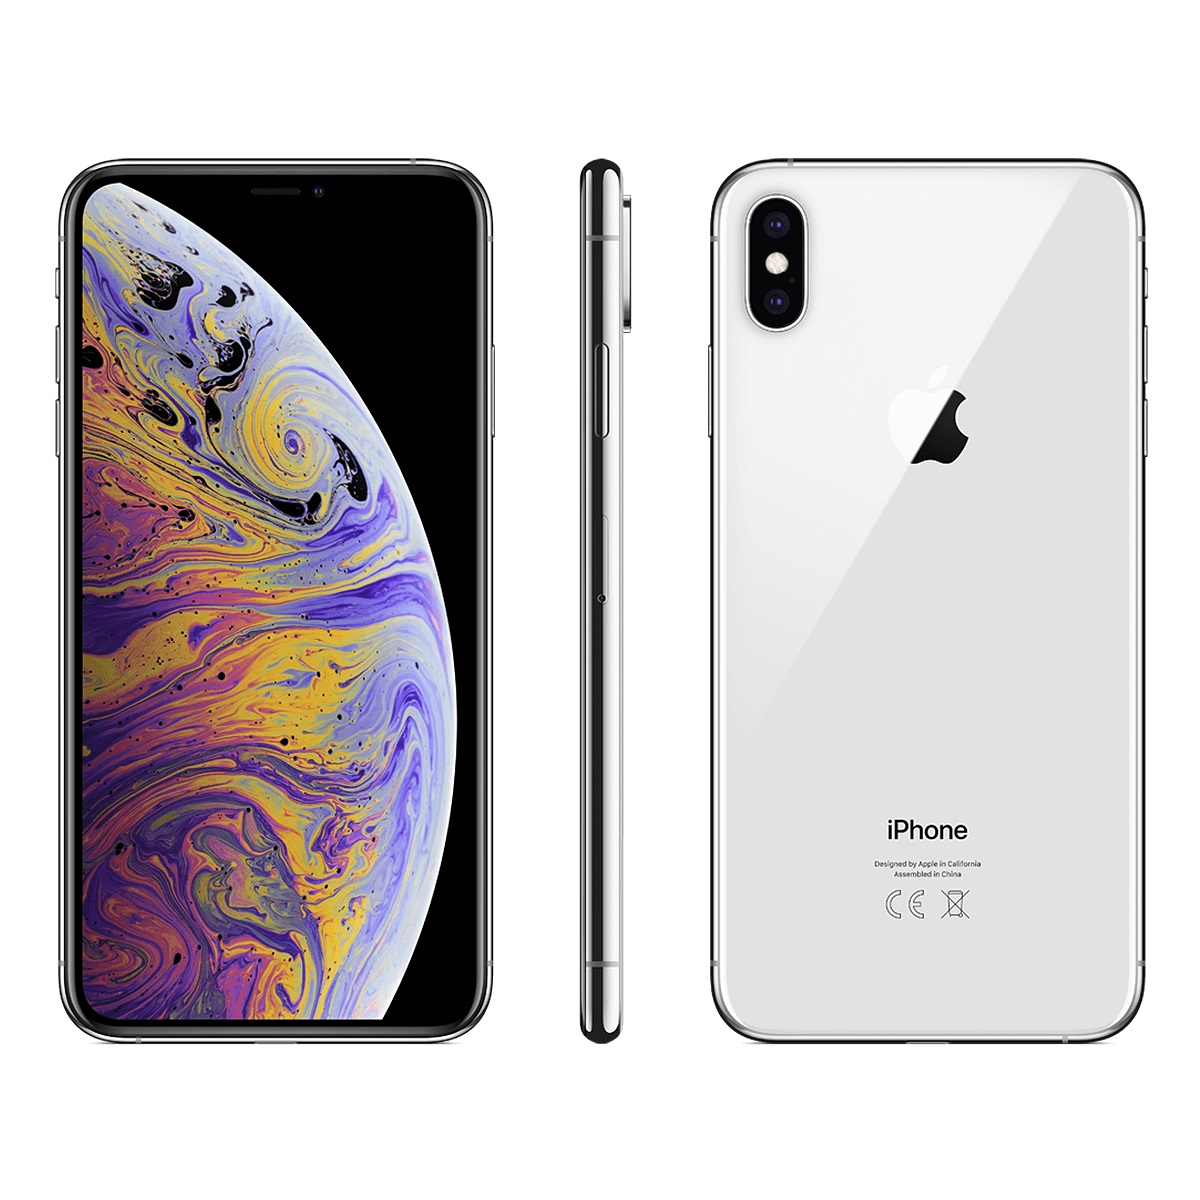 Image of Apple iPhone XS 512GB Dual sim (nano-SIM & eSIM) SIM FREE/ UNLOCKED A1920 - Silver